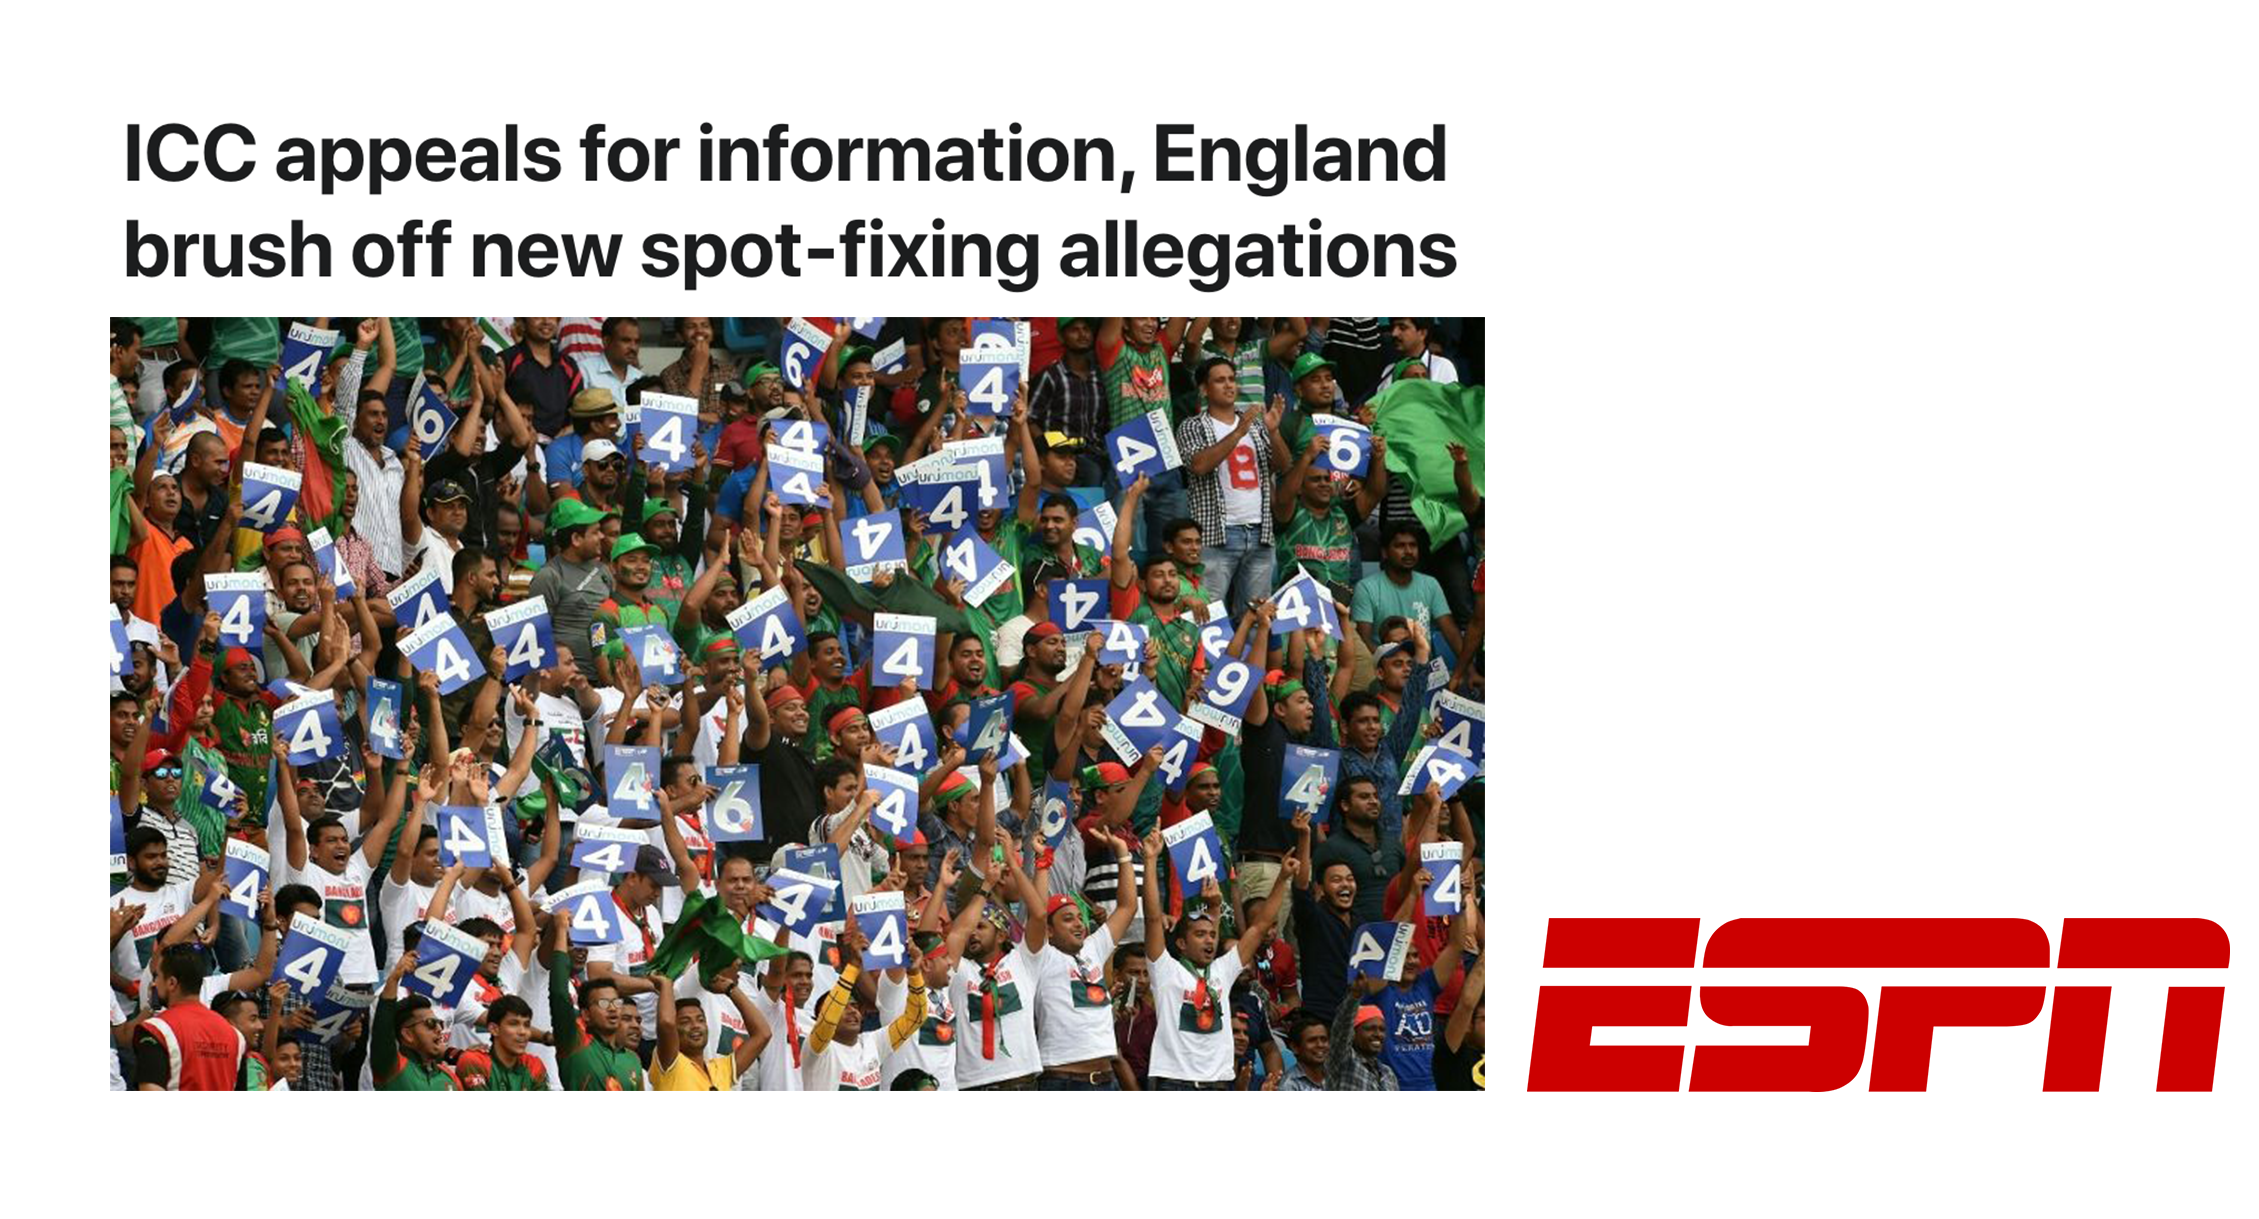 ESPN: ICC appeals for information, England brush off new spot-fixing allegations